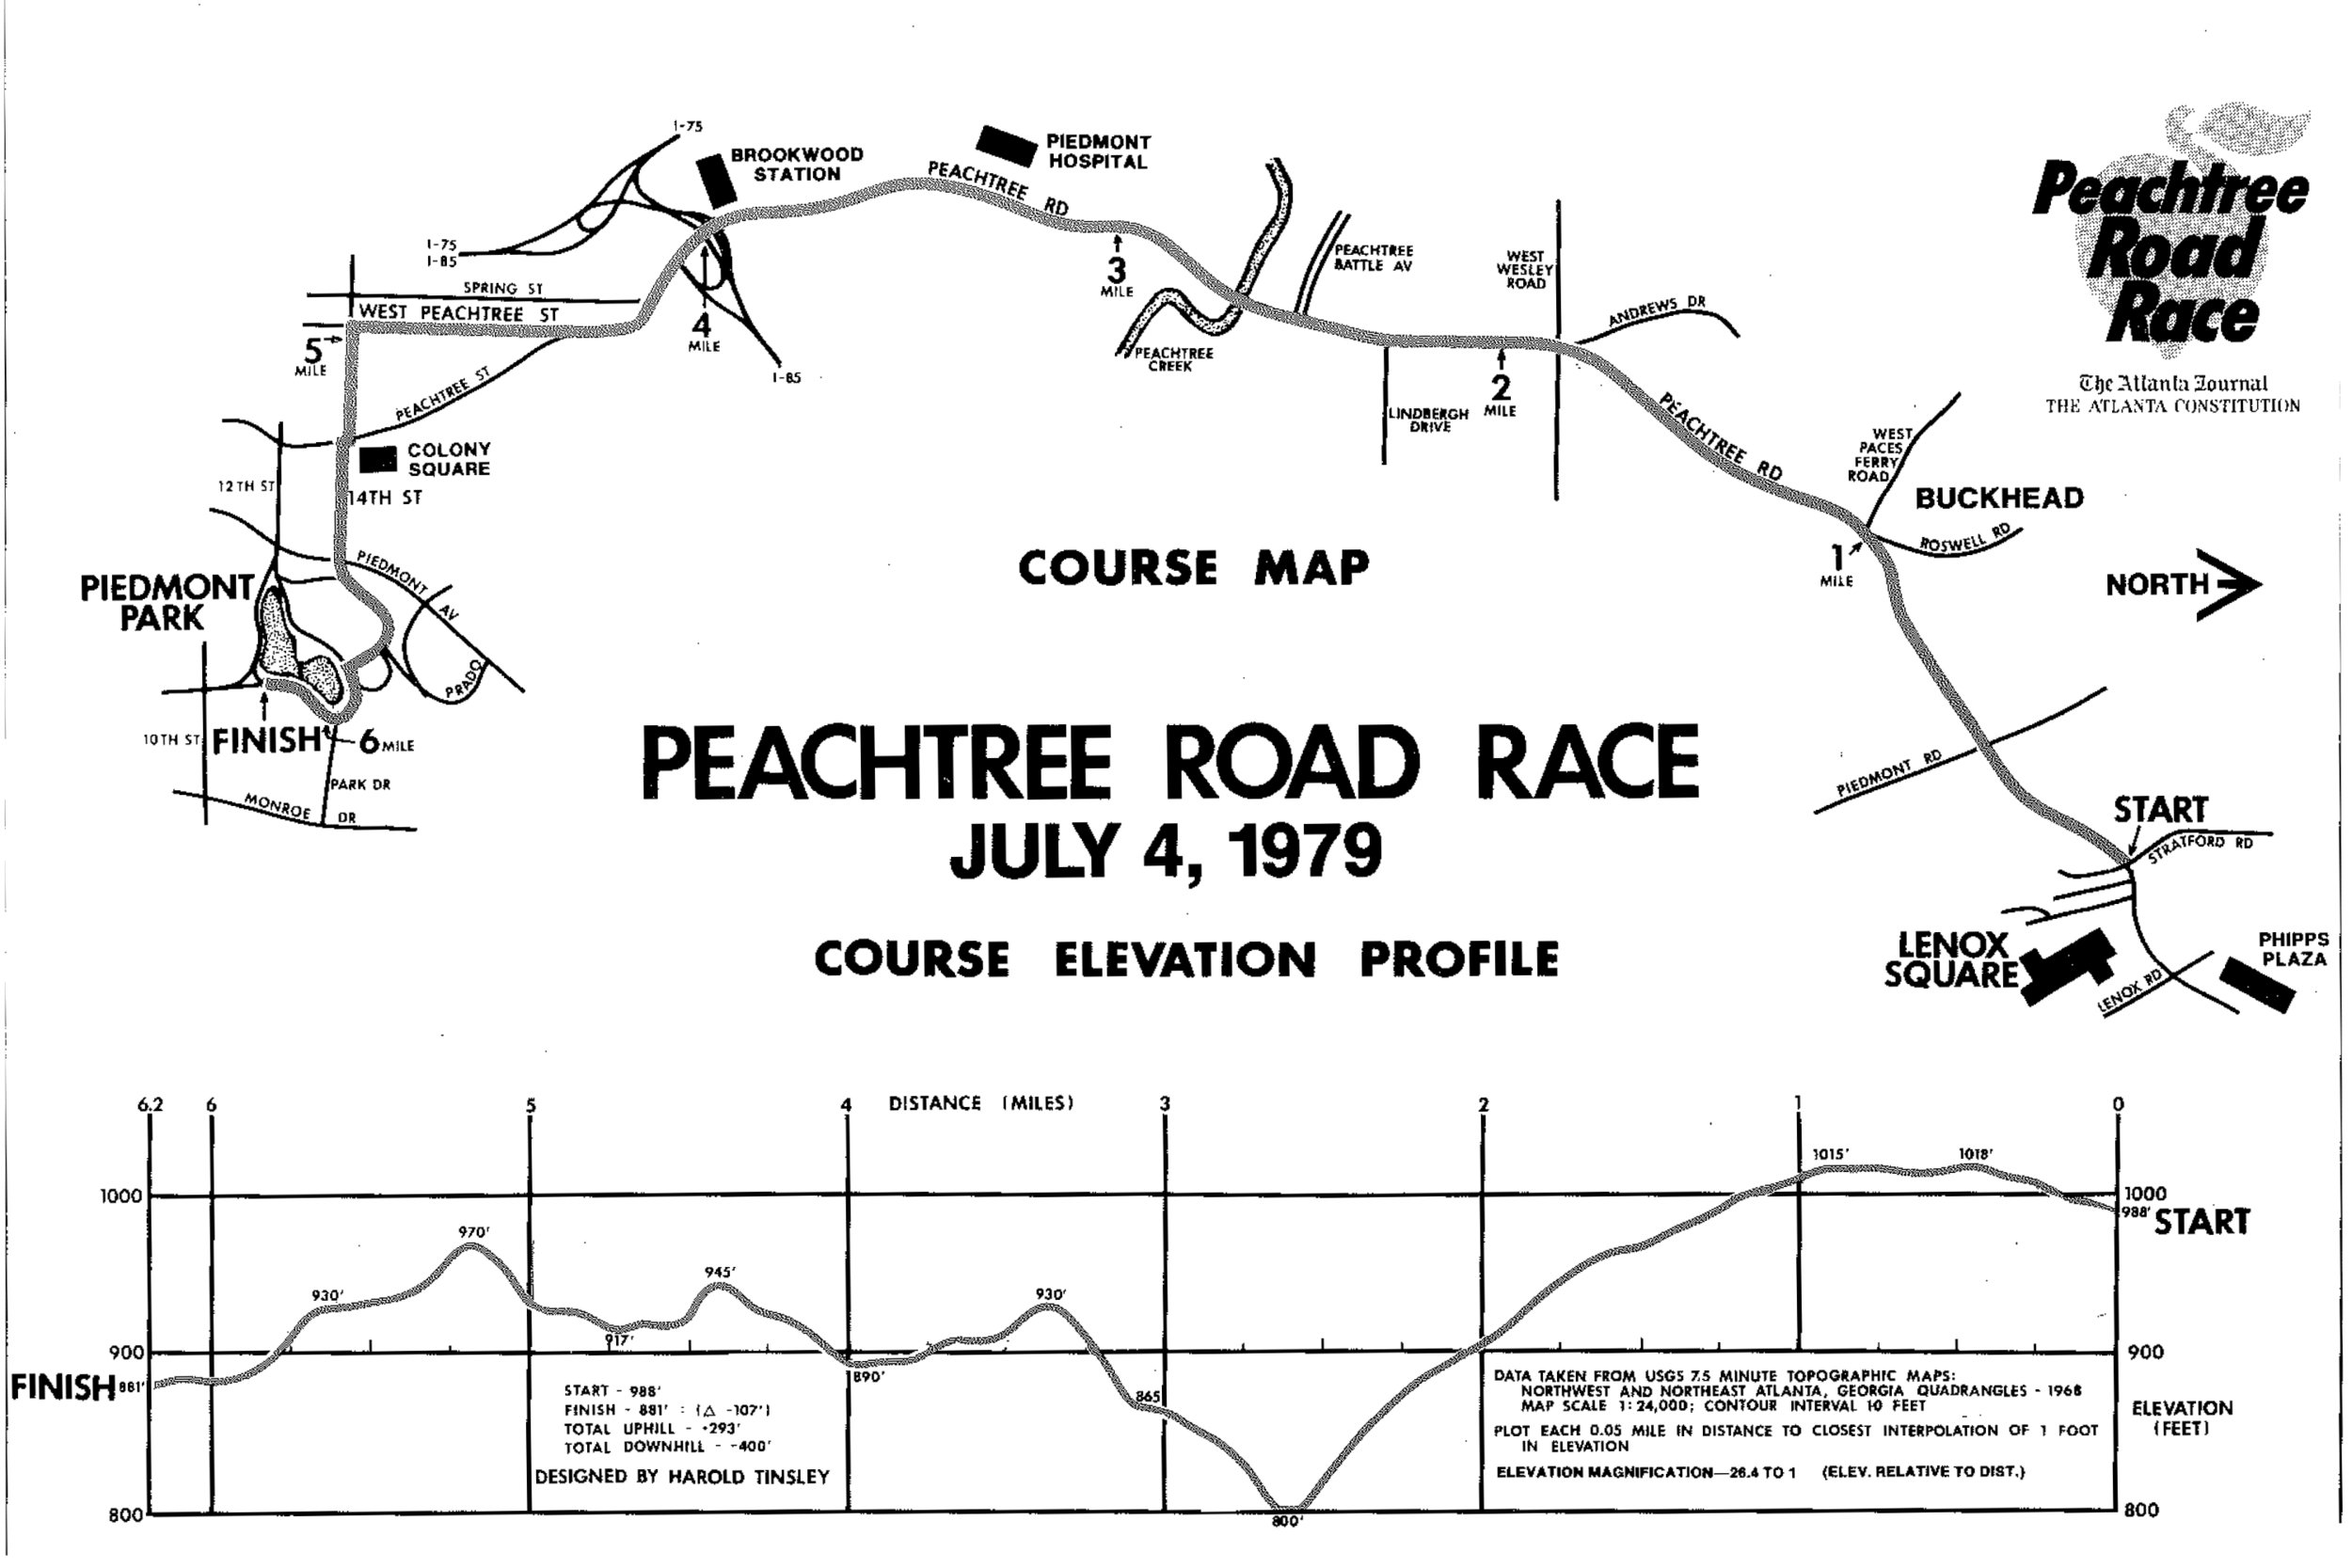 The course map from the 1979 Peachtree Magazine